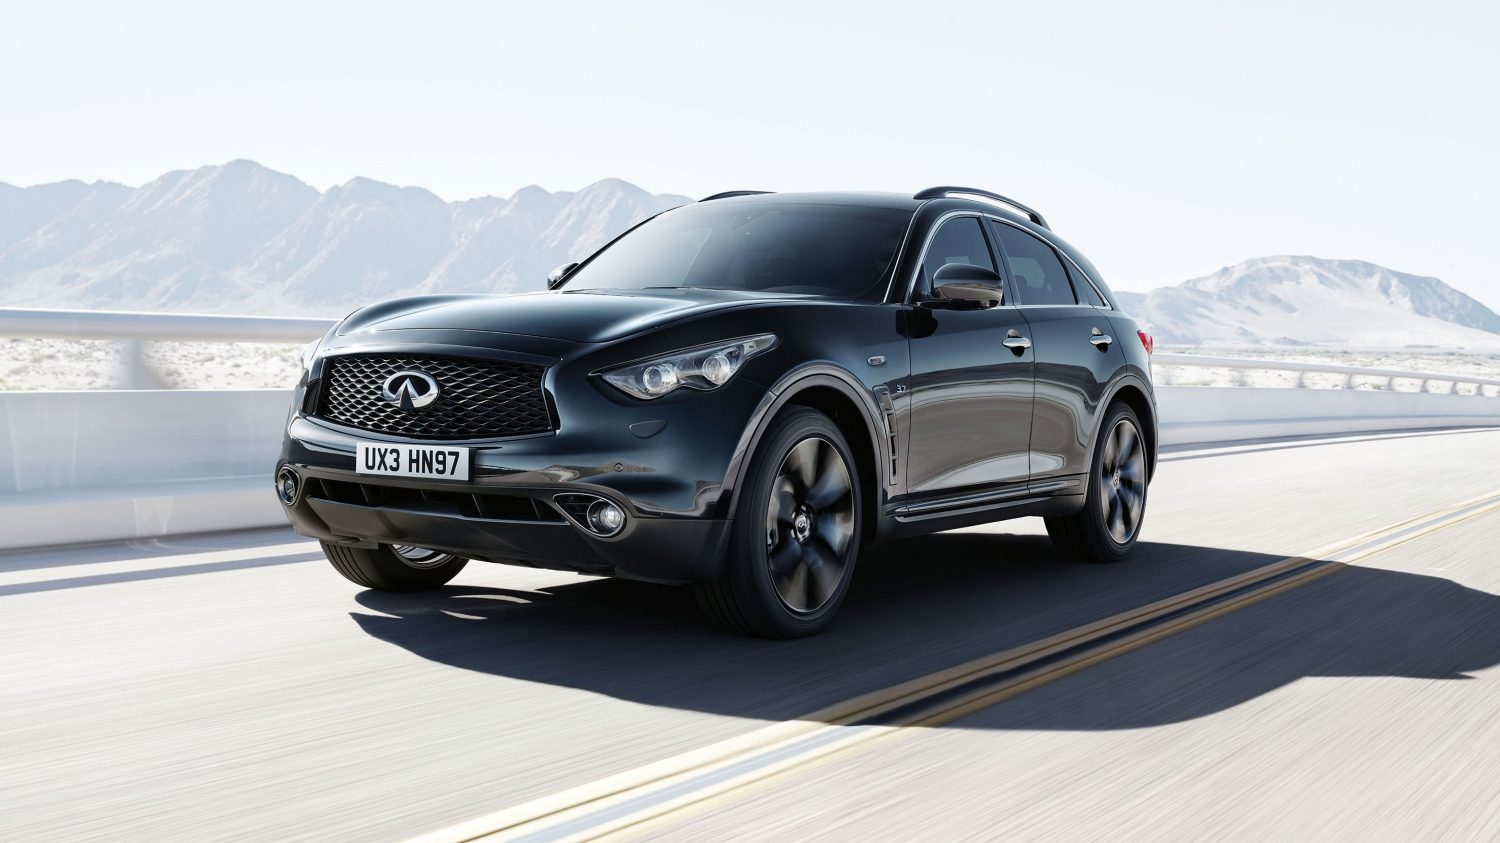 infiniti qx70 luxury crossover suv. Black Bedroom Furniture Sets. Home Design Ideas